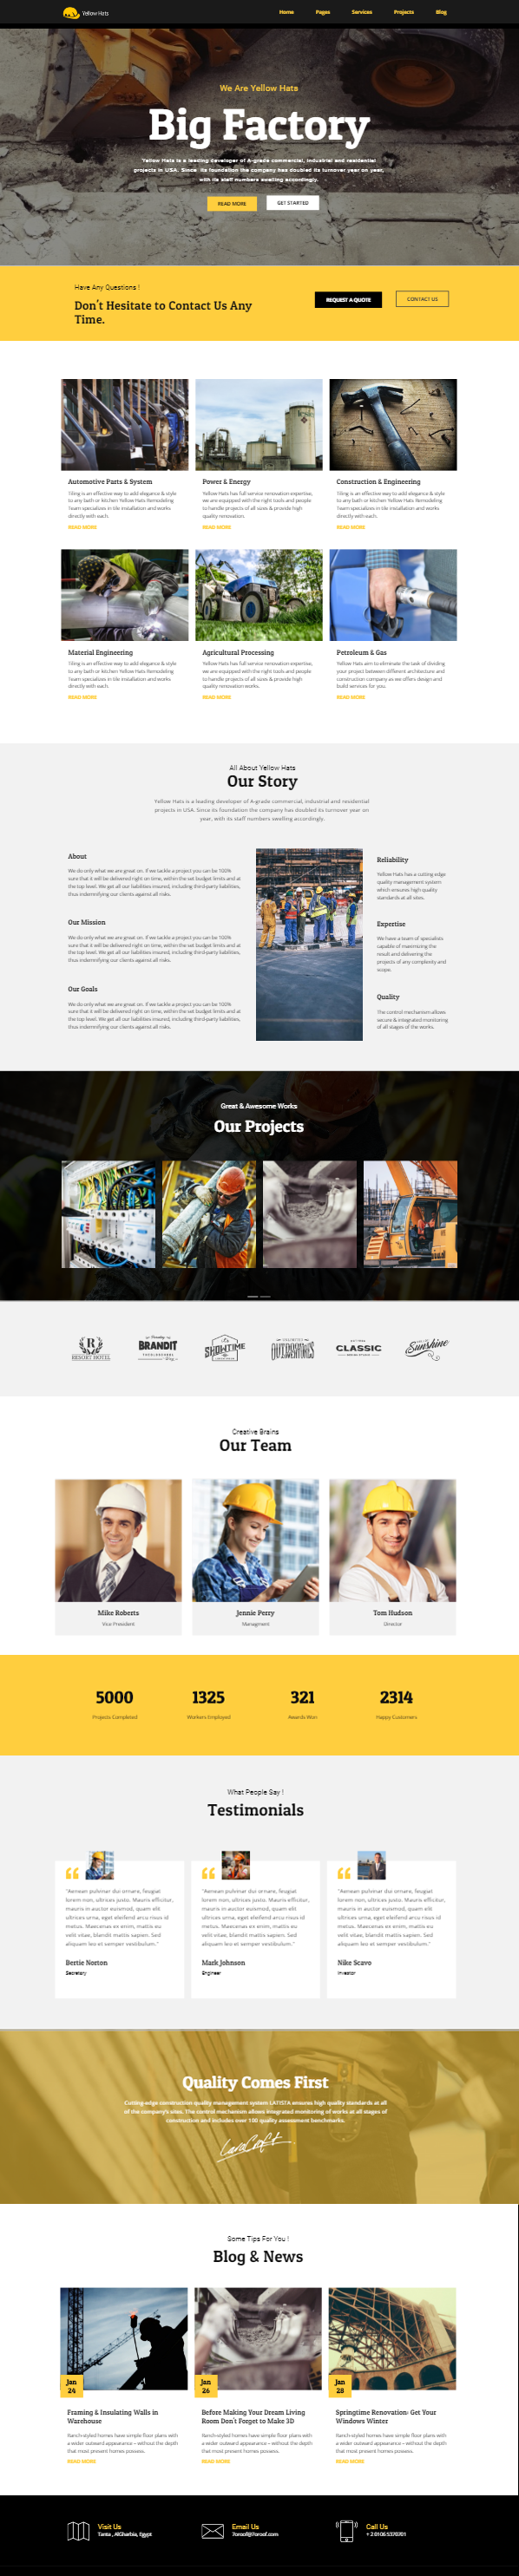 Nicepage Is A New Powerful Web Design Tool And An Easy To Use Builder For Your Websites Blogs And Themes Design W Web Design Tools Builder Website Web Layout